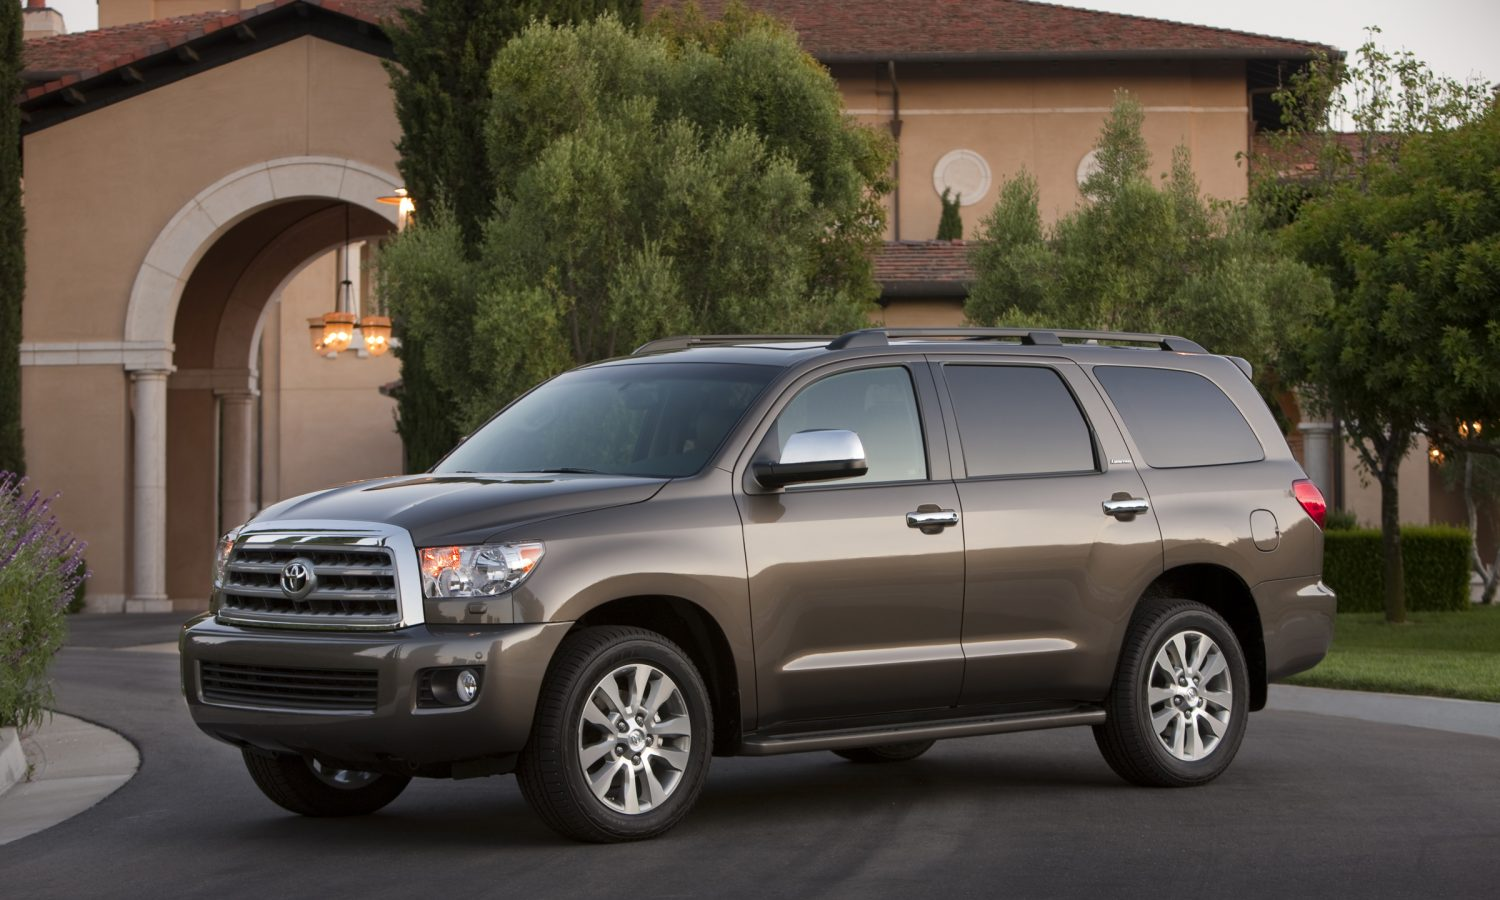 Toyota Tacoma Towing Capacity >> 2017 Toyota Sequoia Lives Up to Its Name with Big Power ...